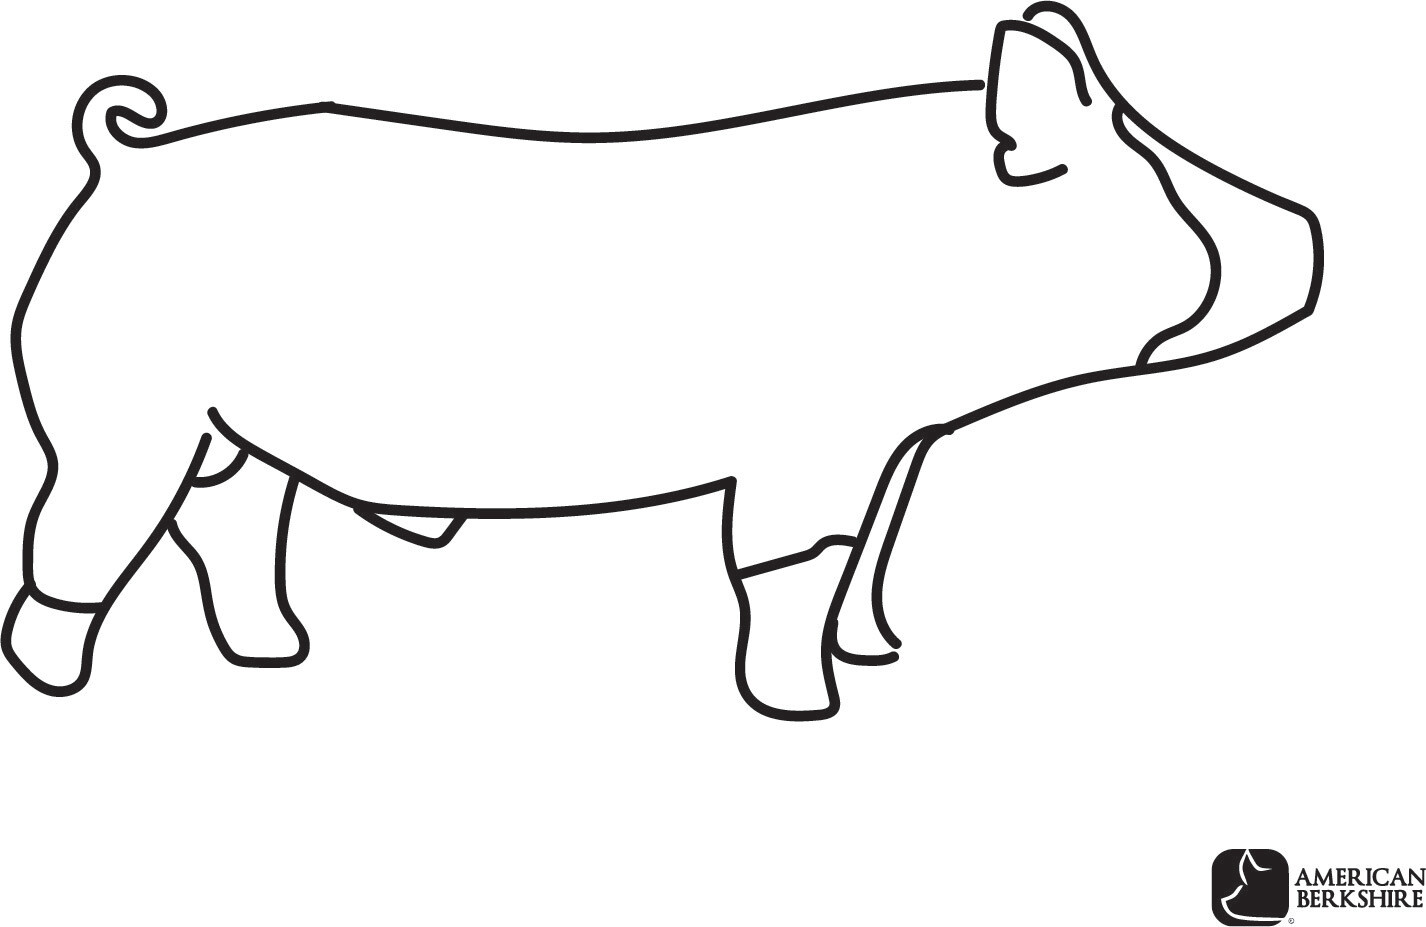 Berkshire Pig Coloring Pages Store American Berkshire Association